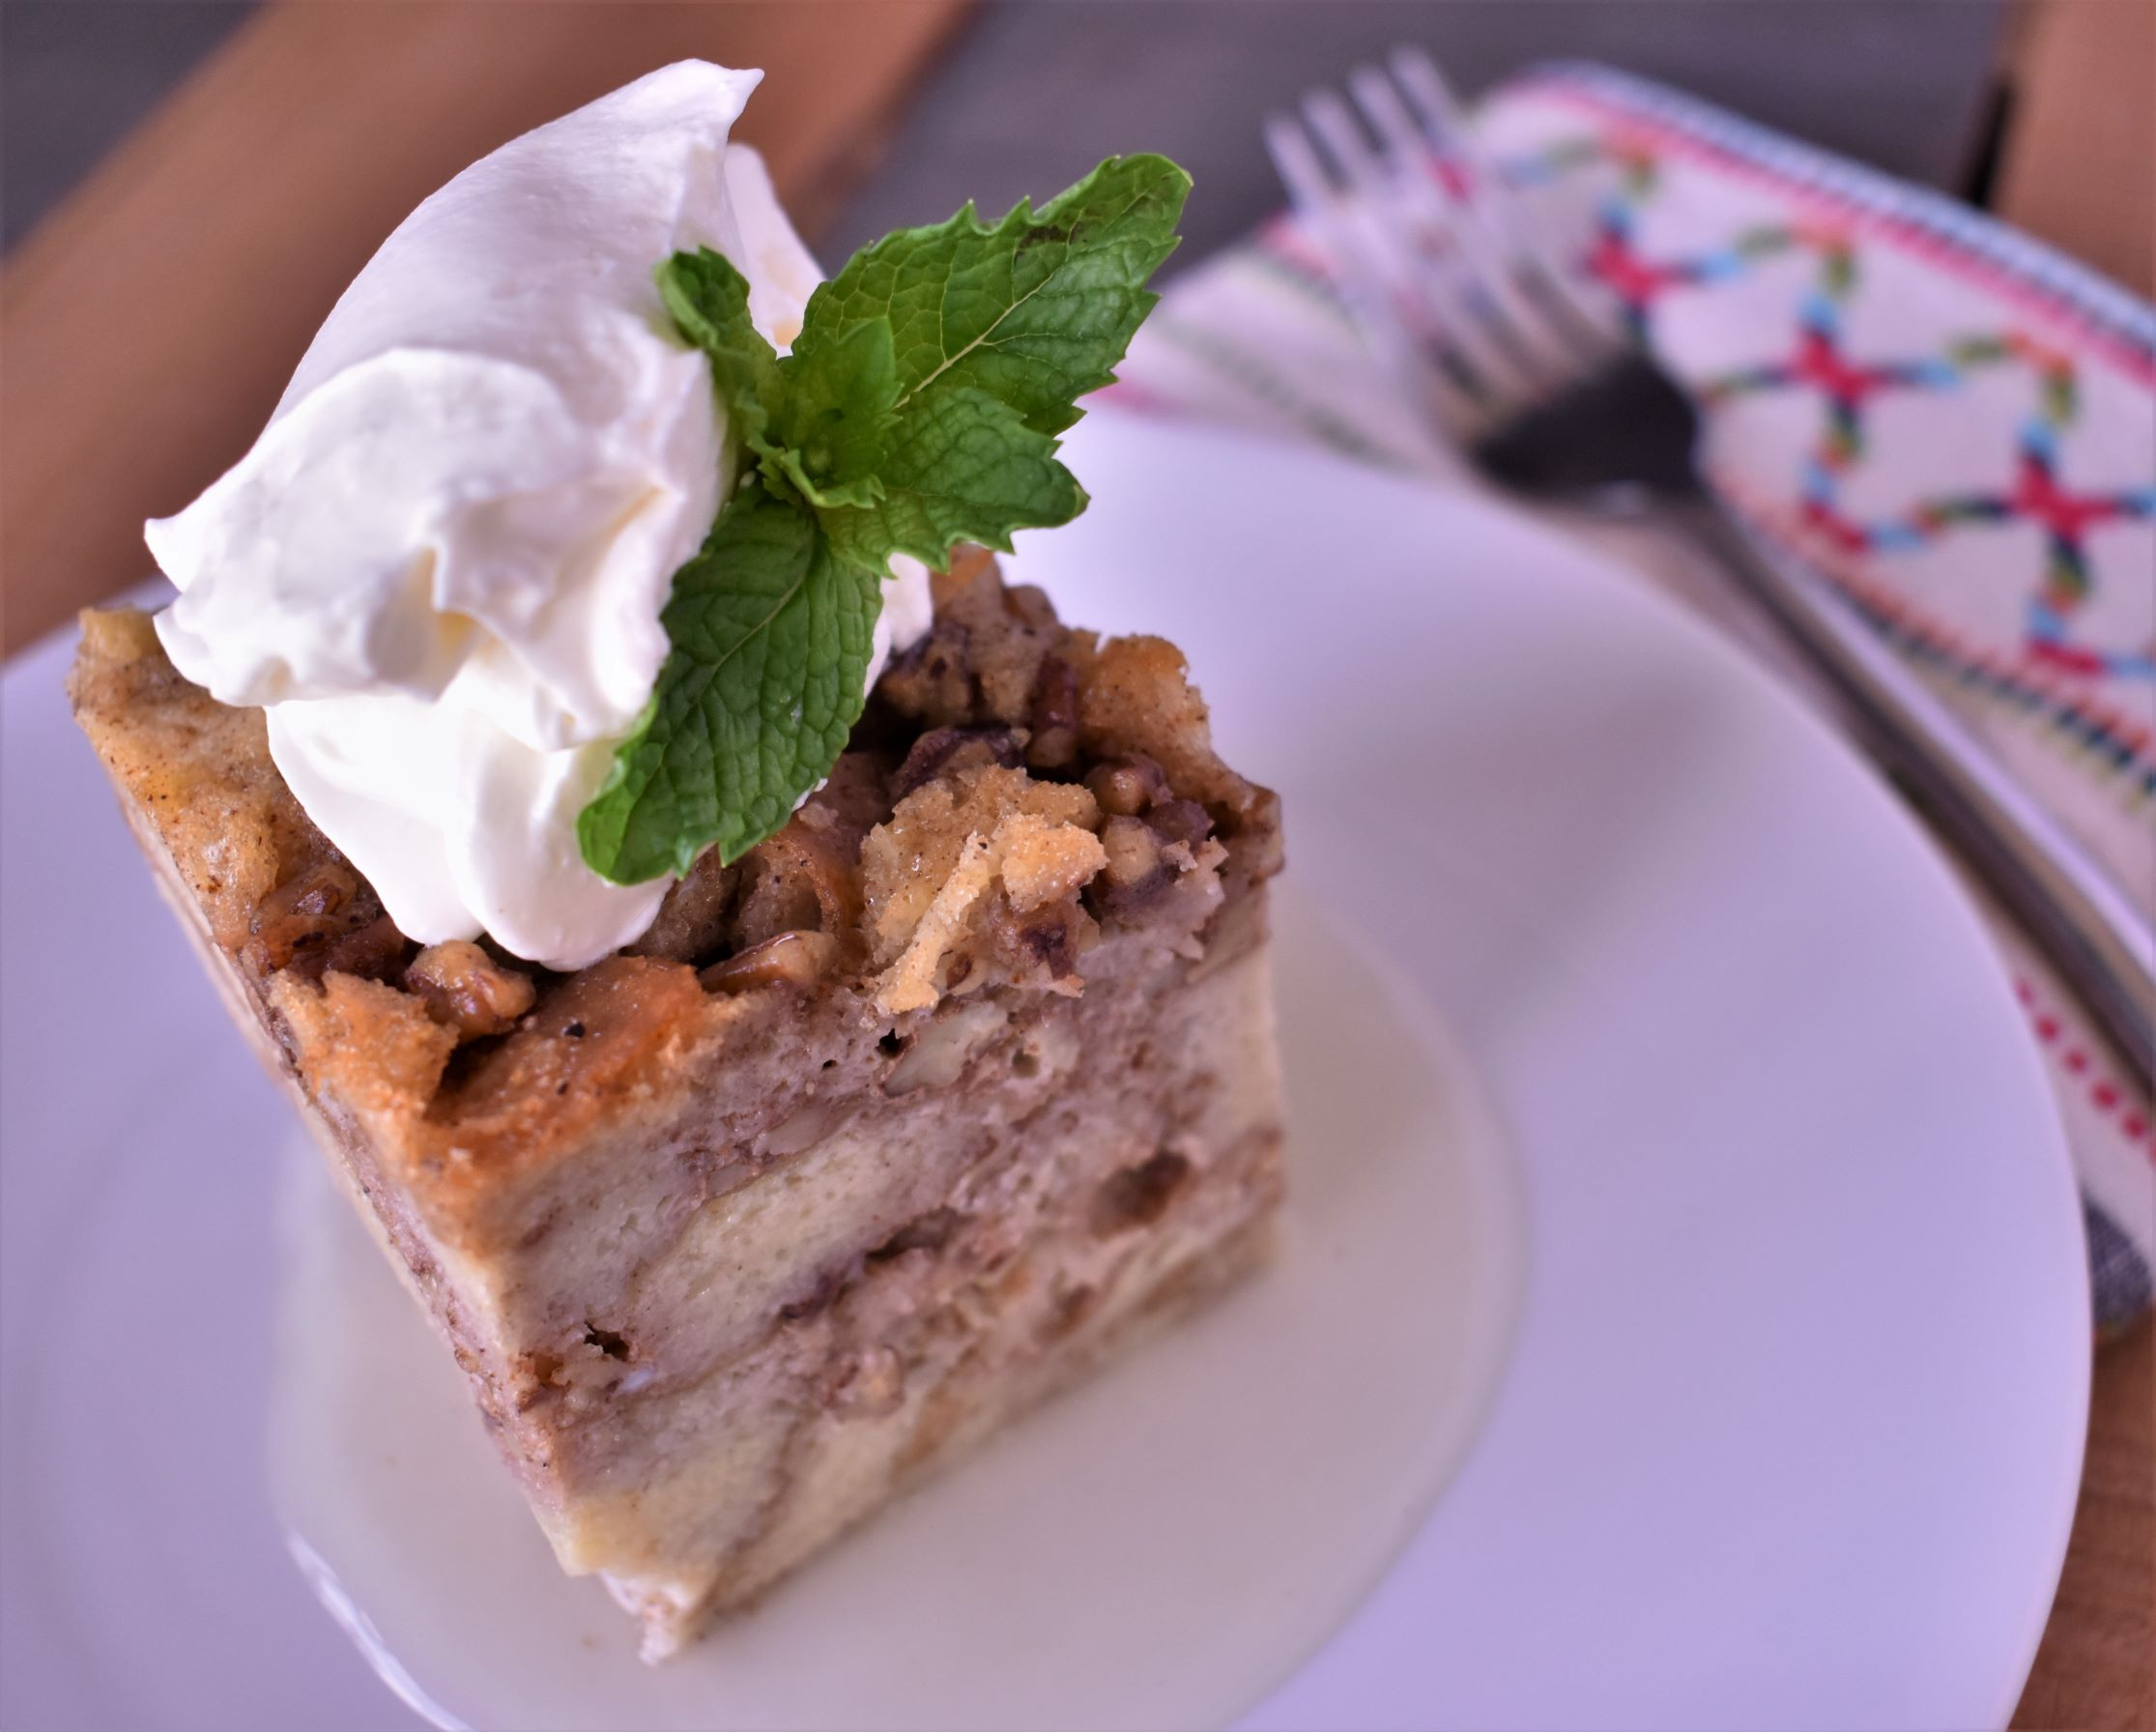 New Orleans Bread Pudding with Lemon Sauce and Chantilly Cream